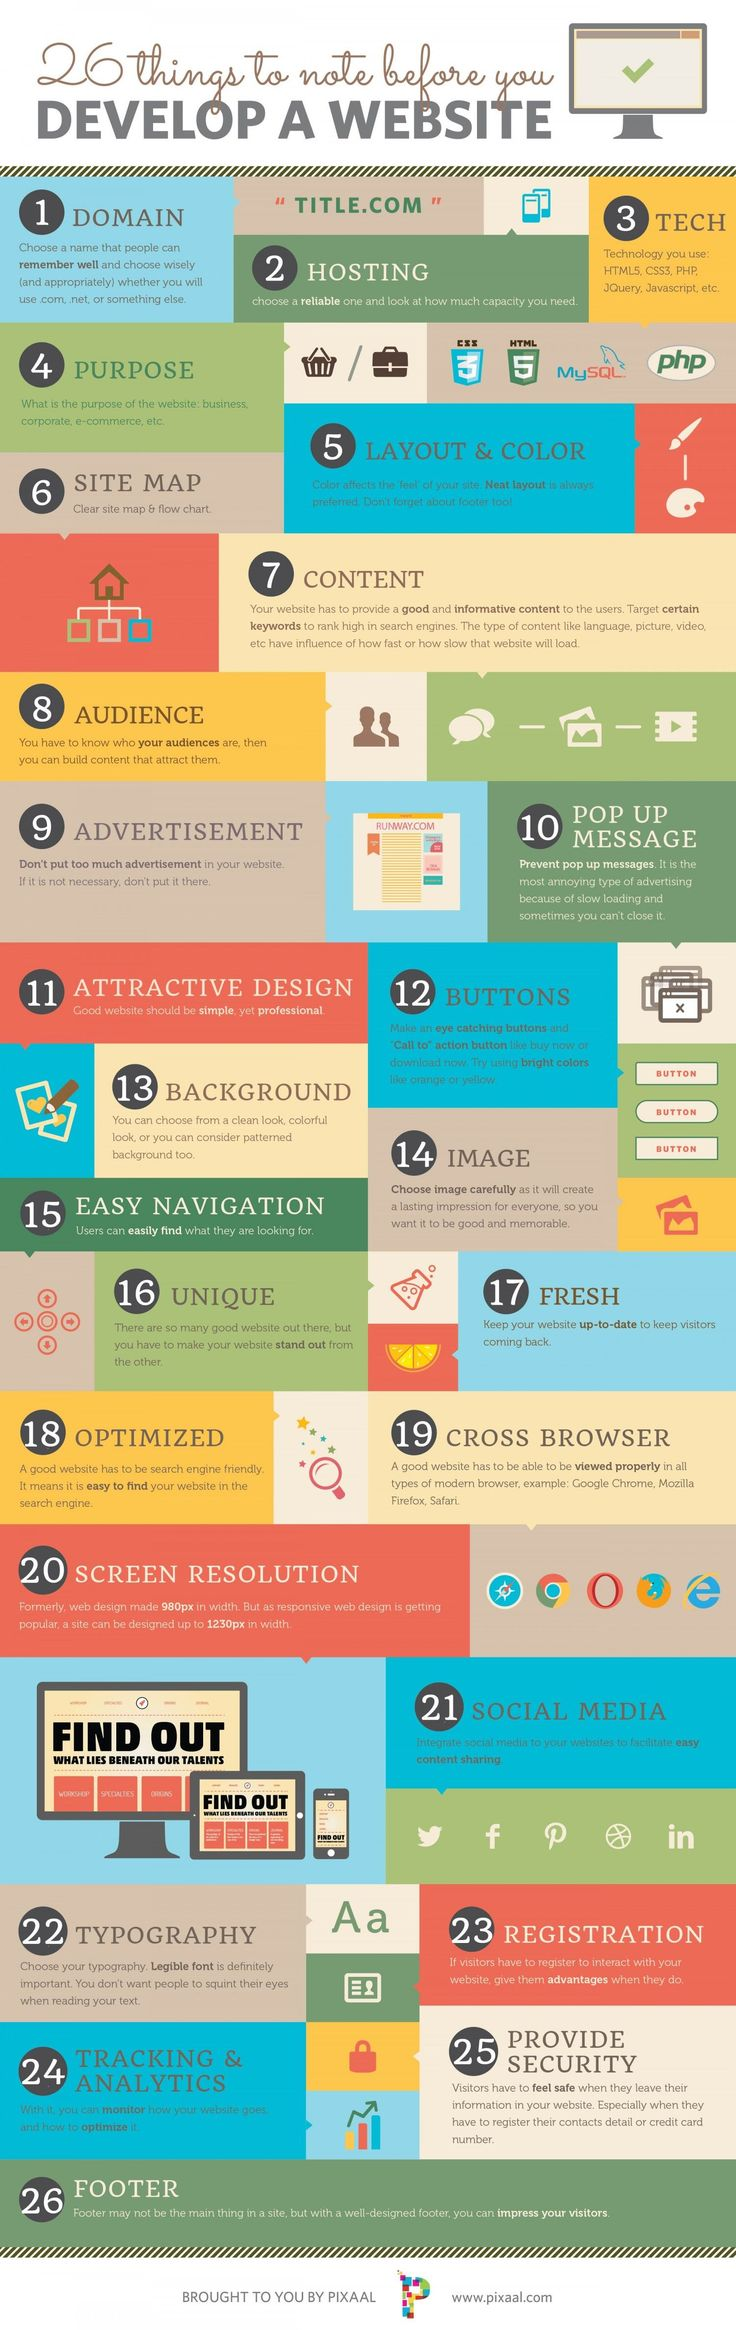 26 Things to Note Before You Develop a #Website #Infographic